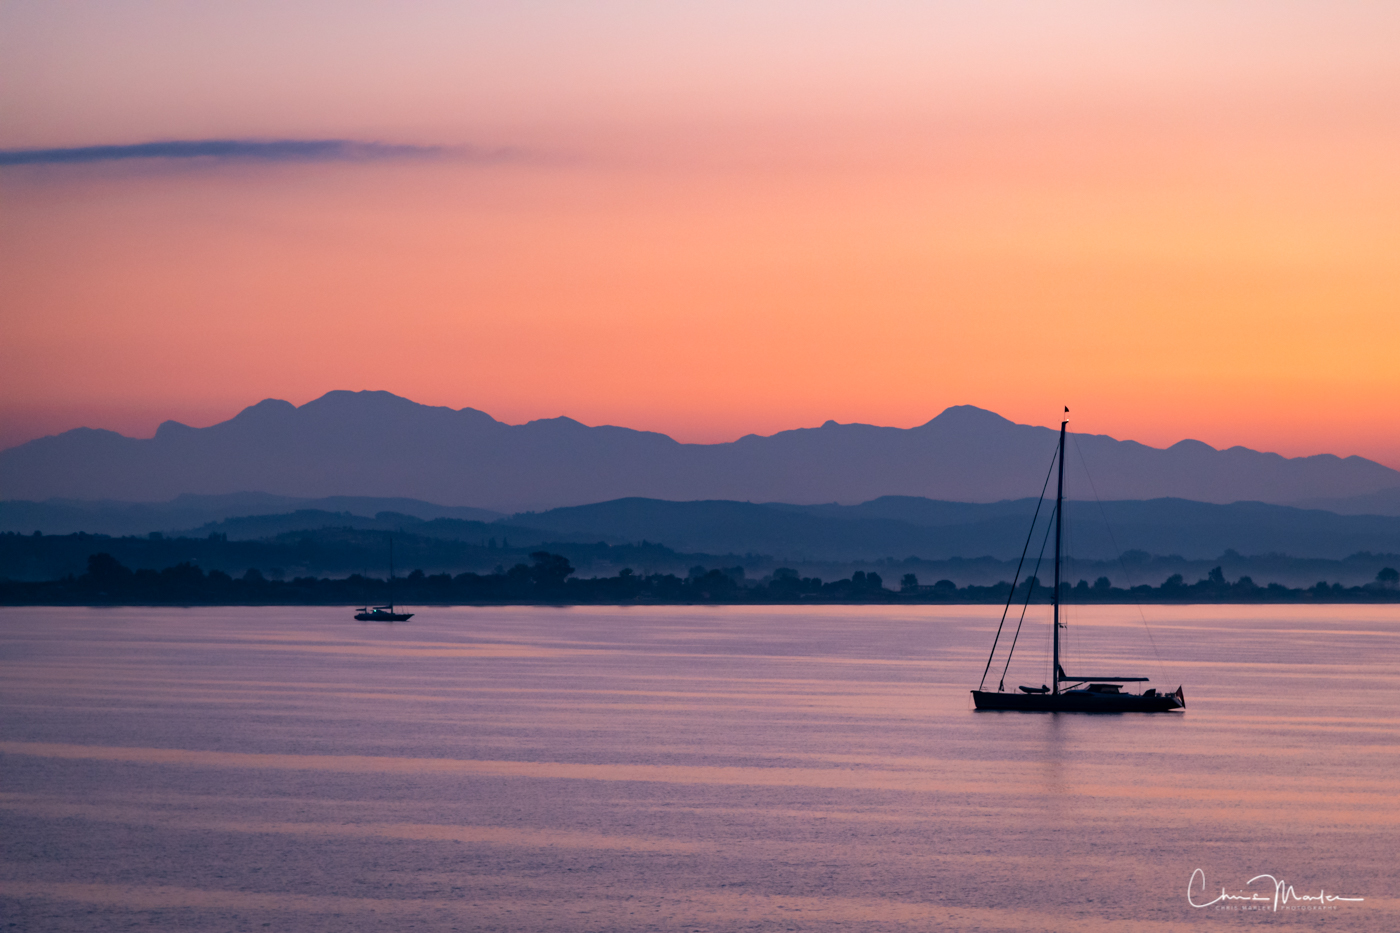 What a calm peaceful morning it was when we sailed into the port of Katakolon Greece at dawn.  The sun was moments away from...